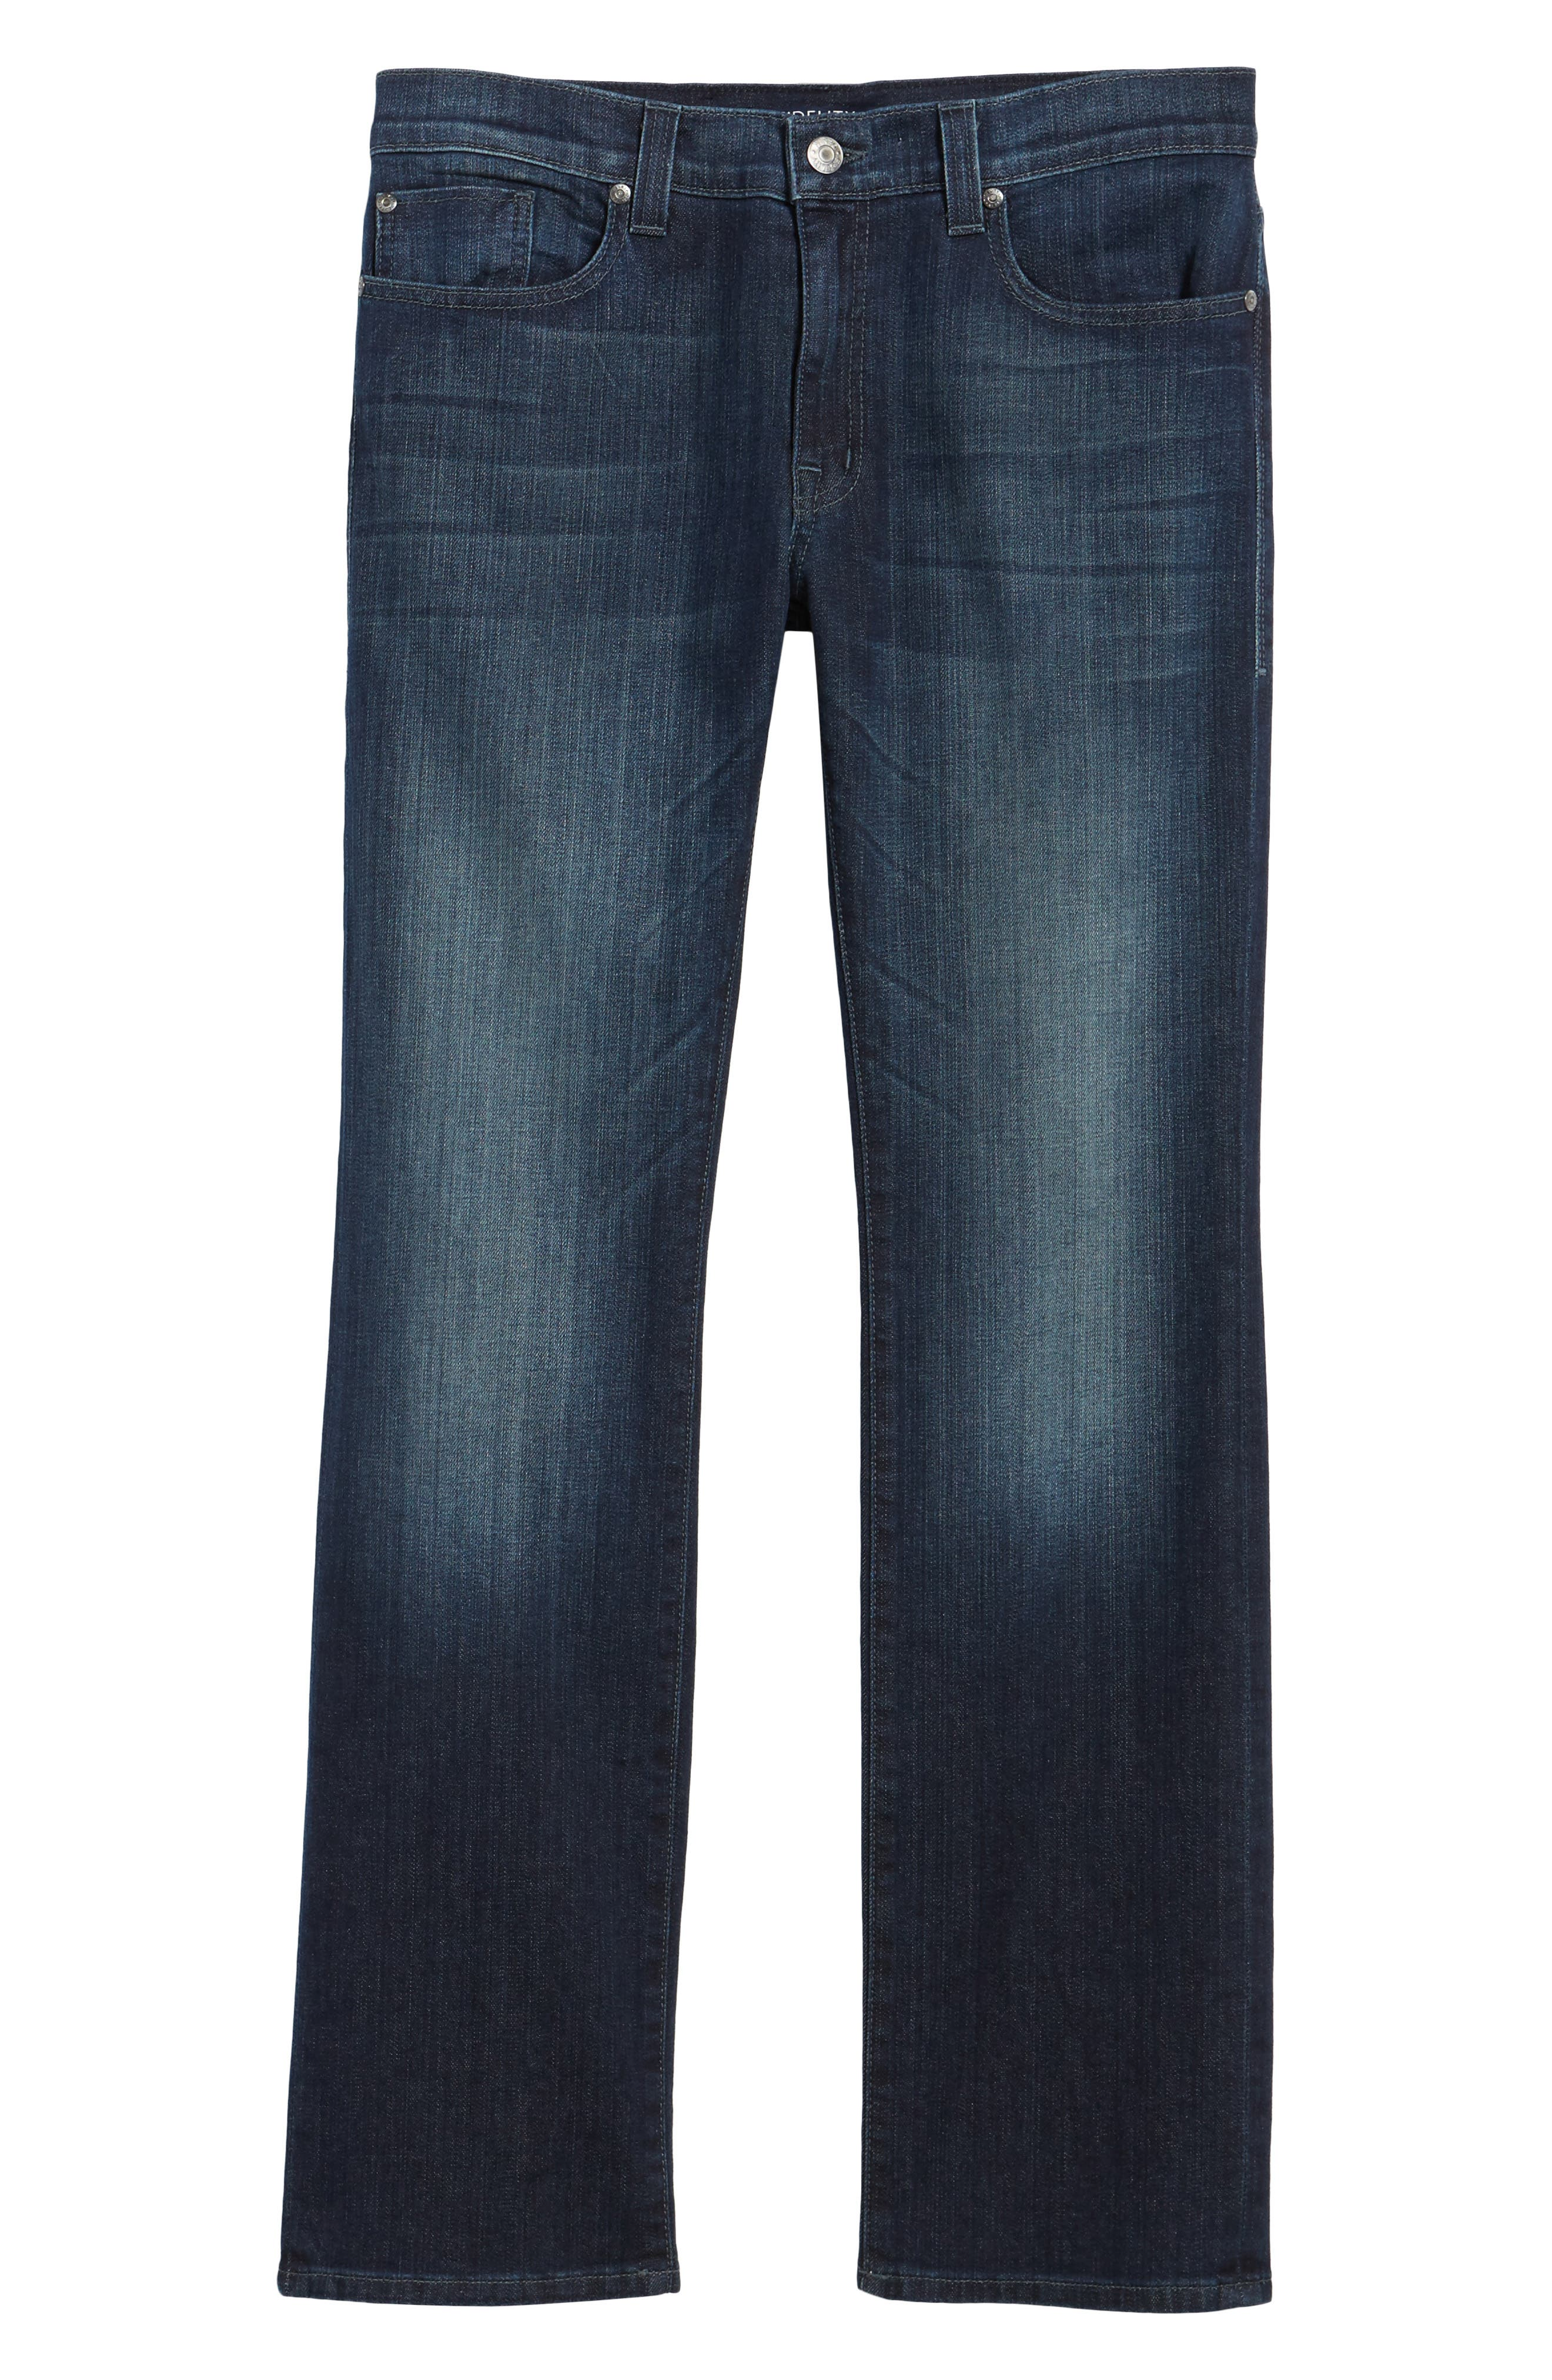 50-11 Relaxed Fit Jeans,                             Alternate thumbnail 6, color,                             Militia Blue